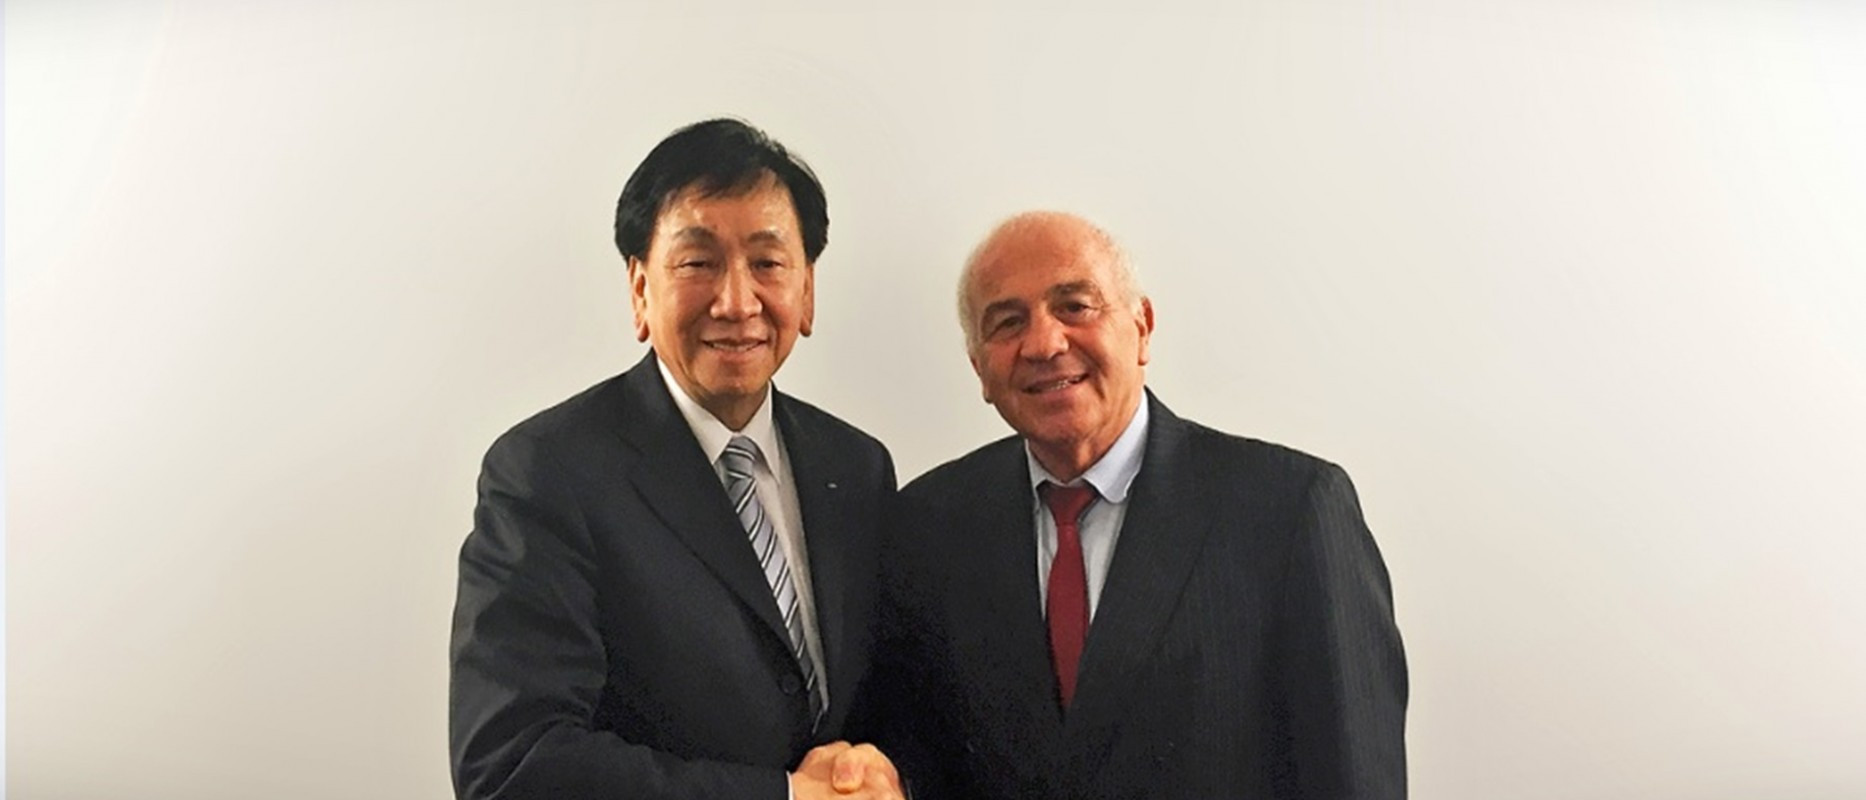 Franco Falcinelli, right, has replaced C K Wu, left, as Acting Interim President of AIBA following his suspension ©AIBA